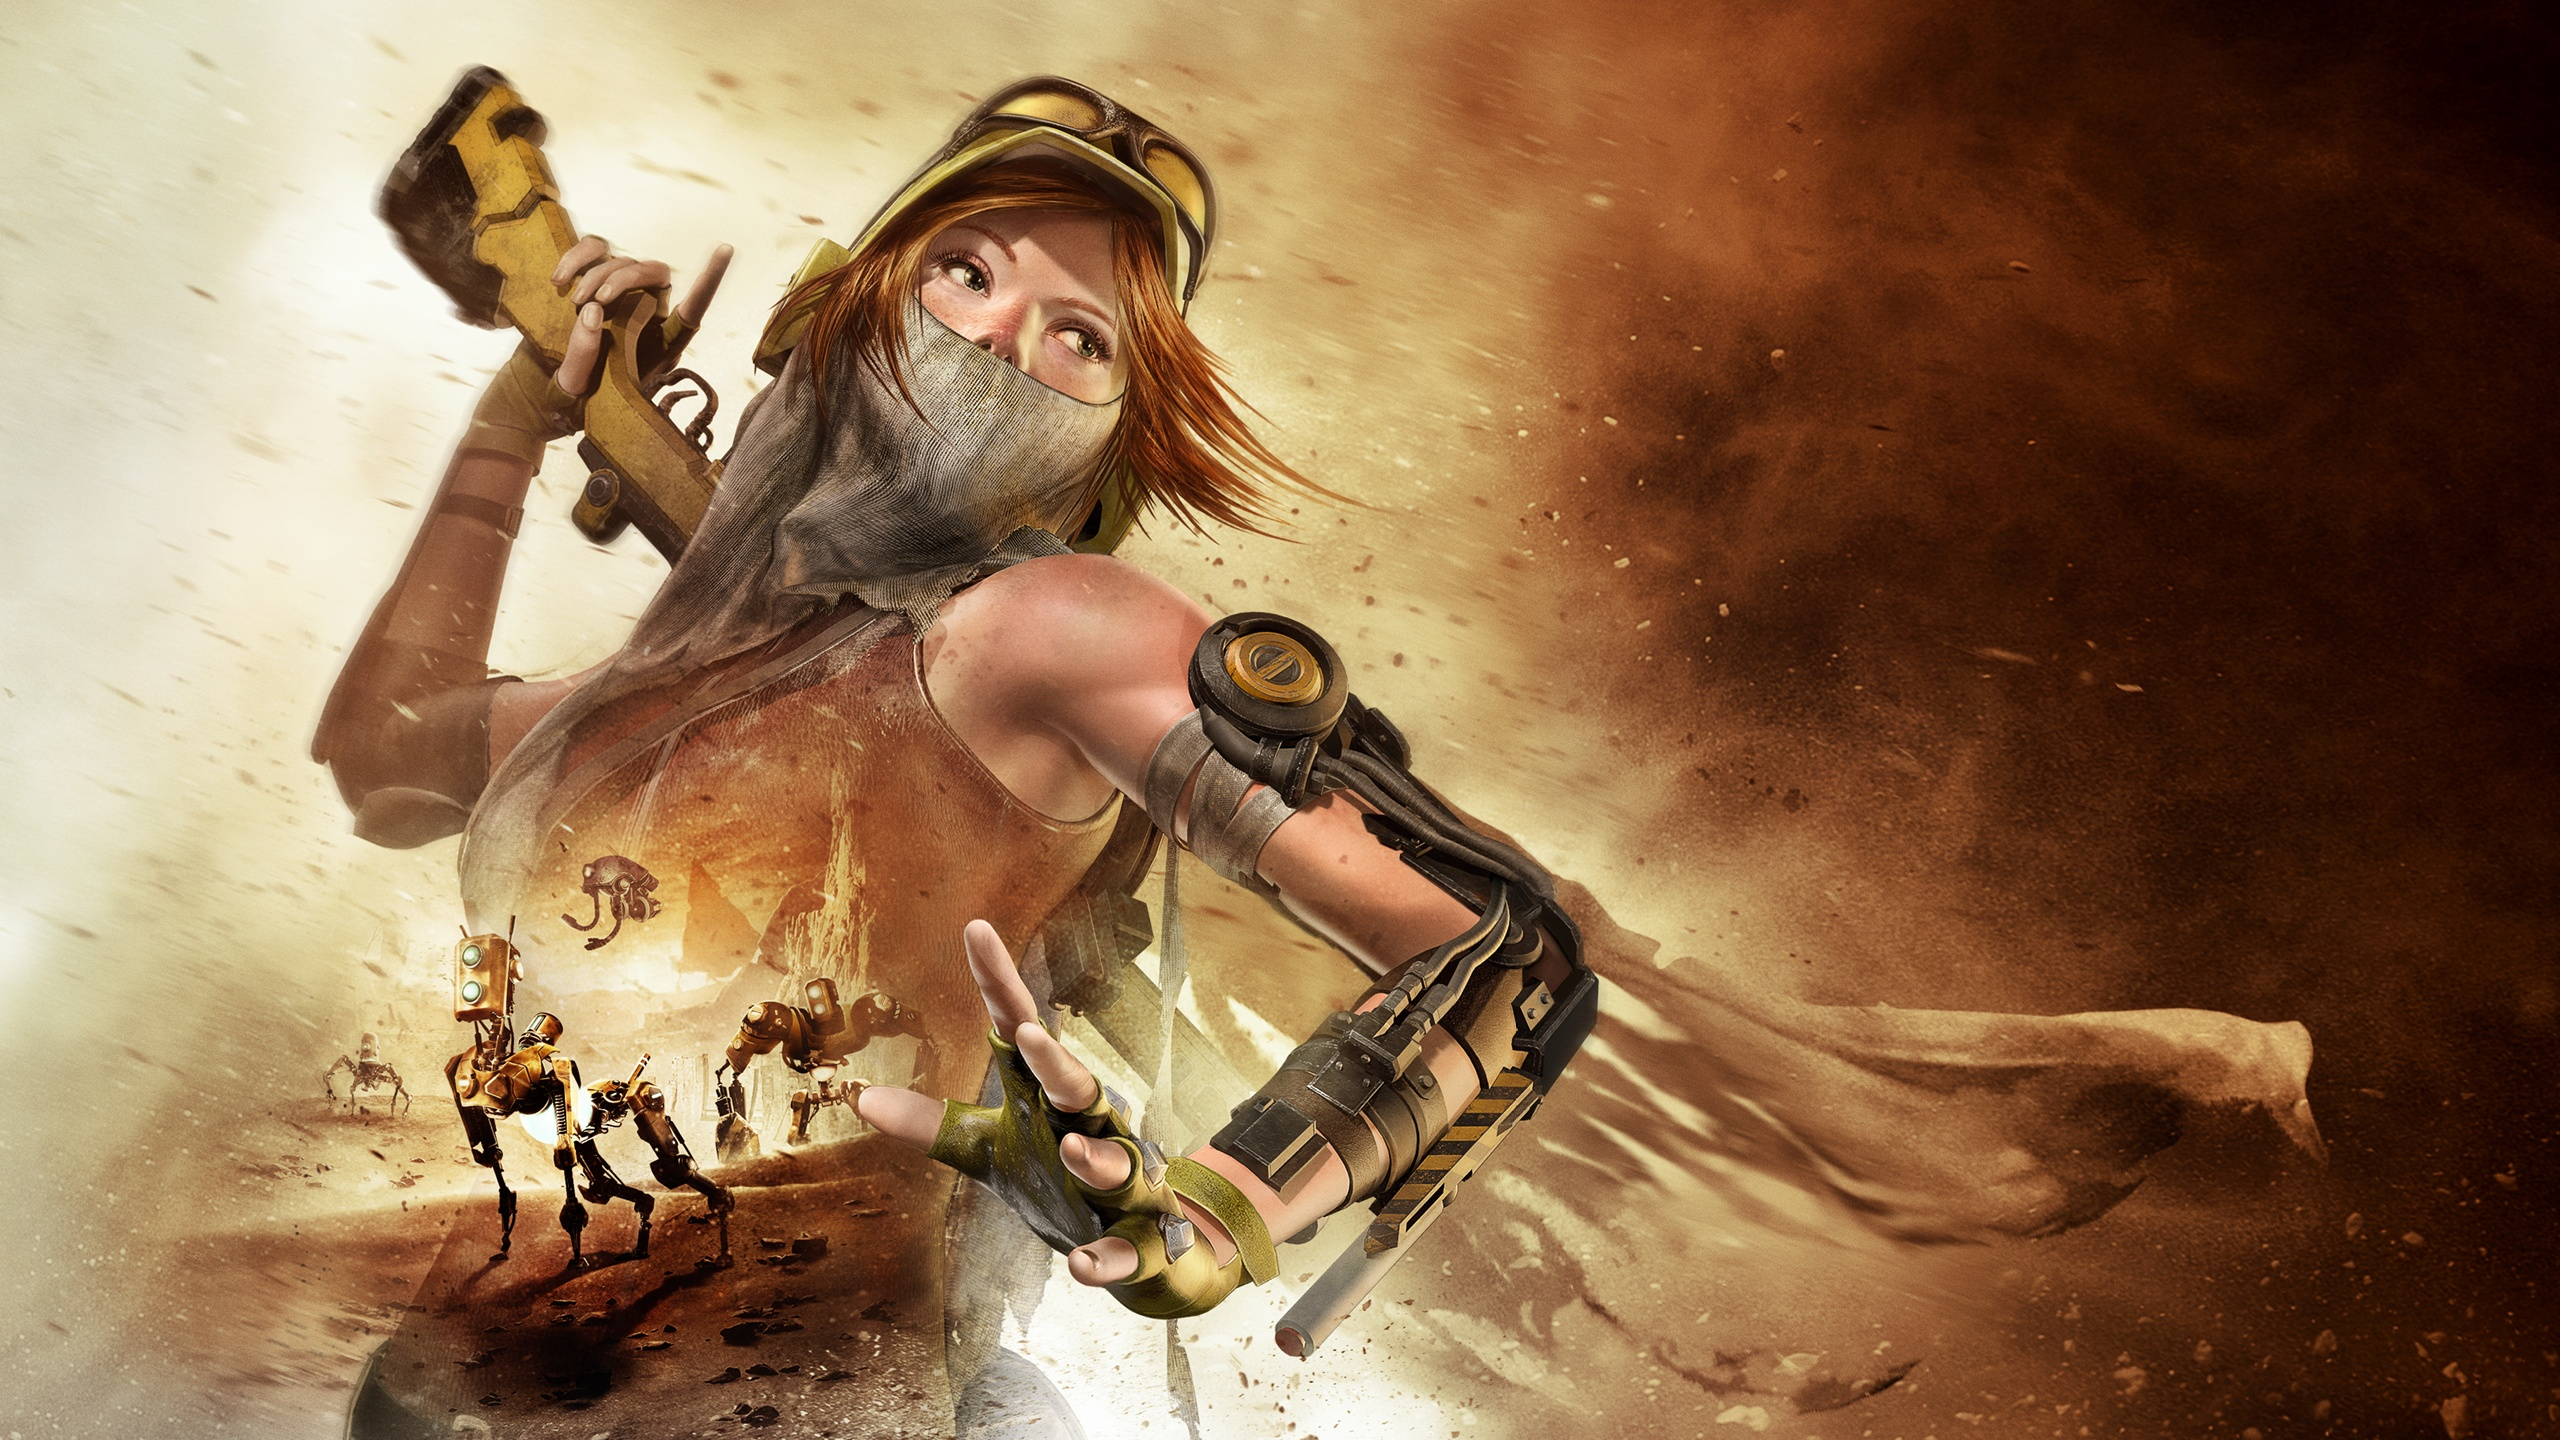 Dead Rising 3 Wallpaper Hd Recore Hd Xbox One Wallpapers In Jpg Format For Free Download